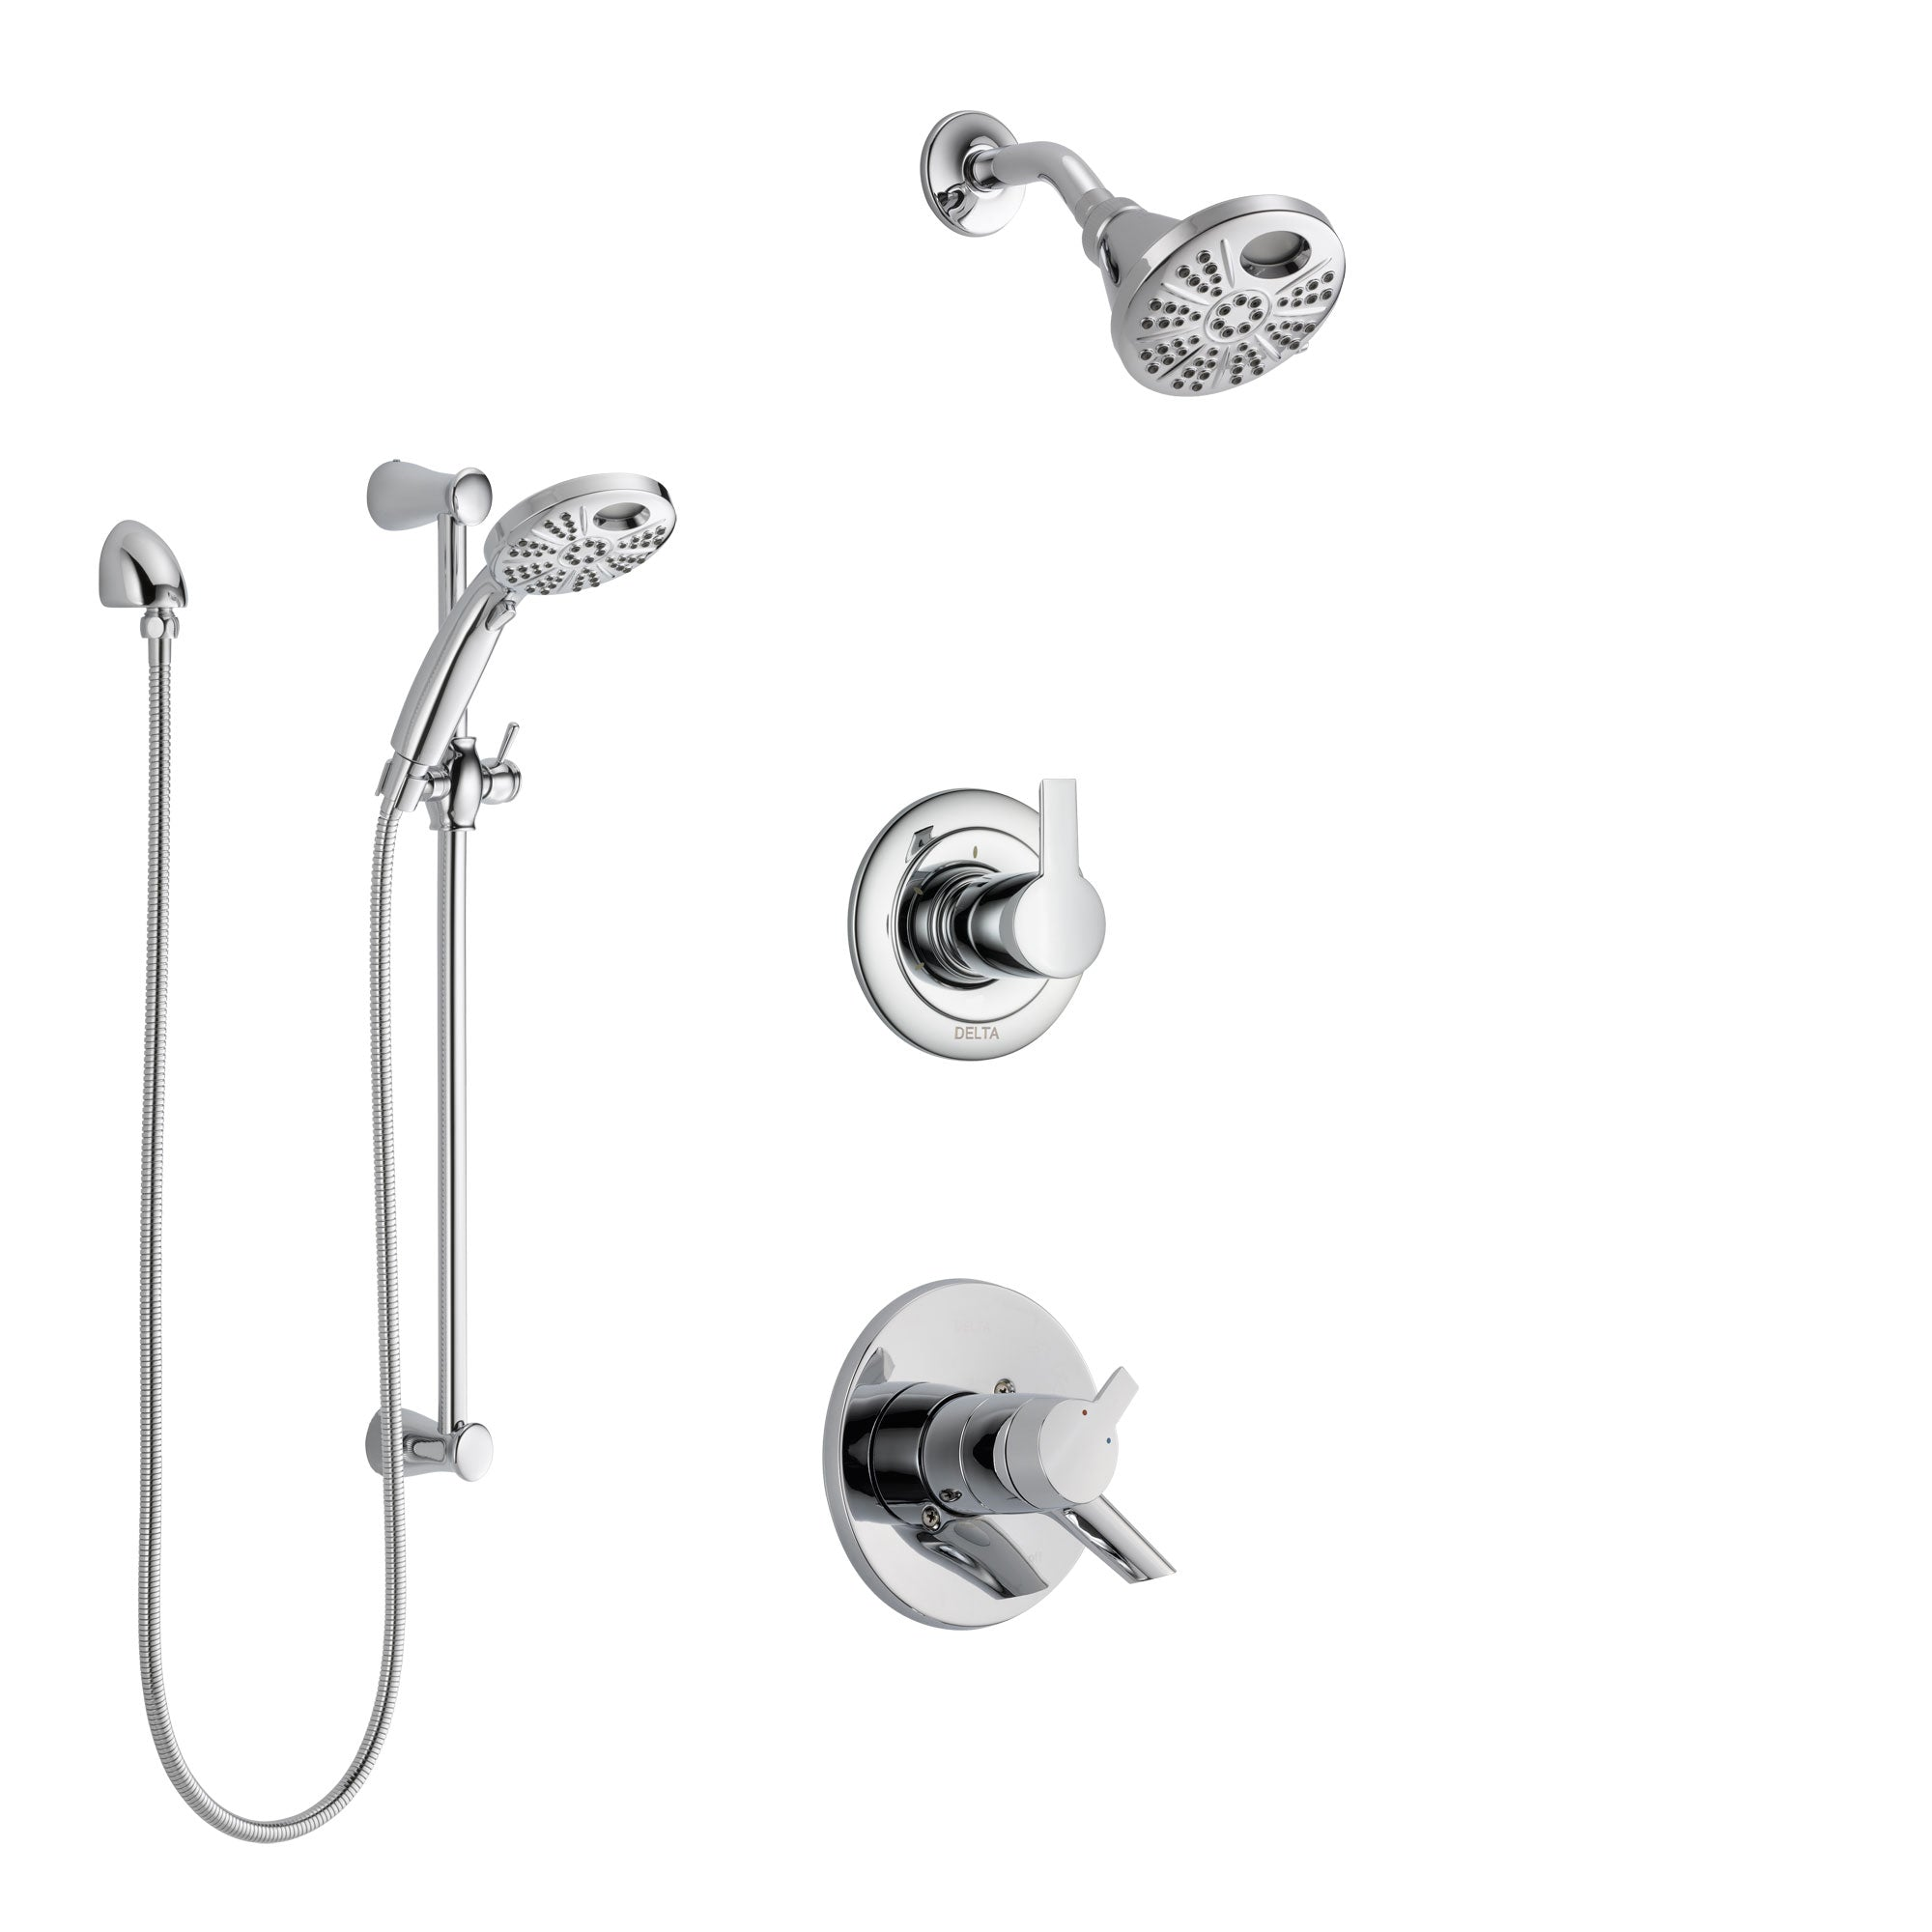 Delta Compel Chrome Finish Shower System with Dual Control Handle, 3-Setting Diverter, Temp2O Showerhead, and Hand Shower with Slidebar SS17611